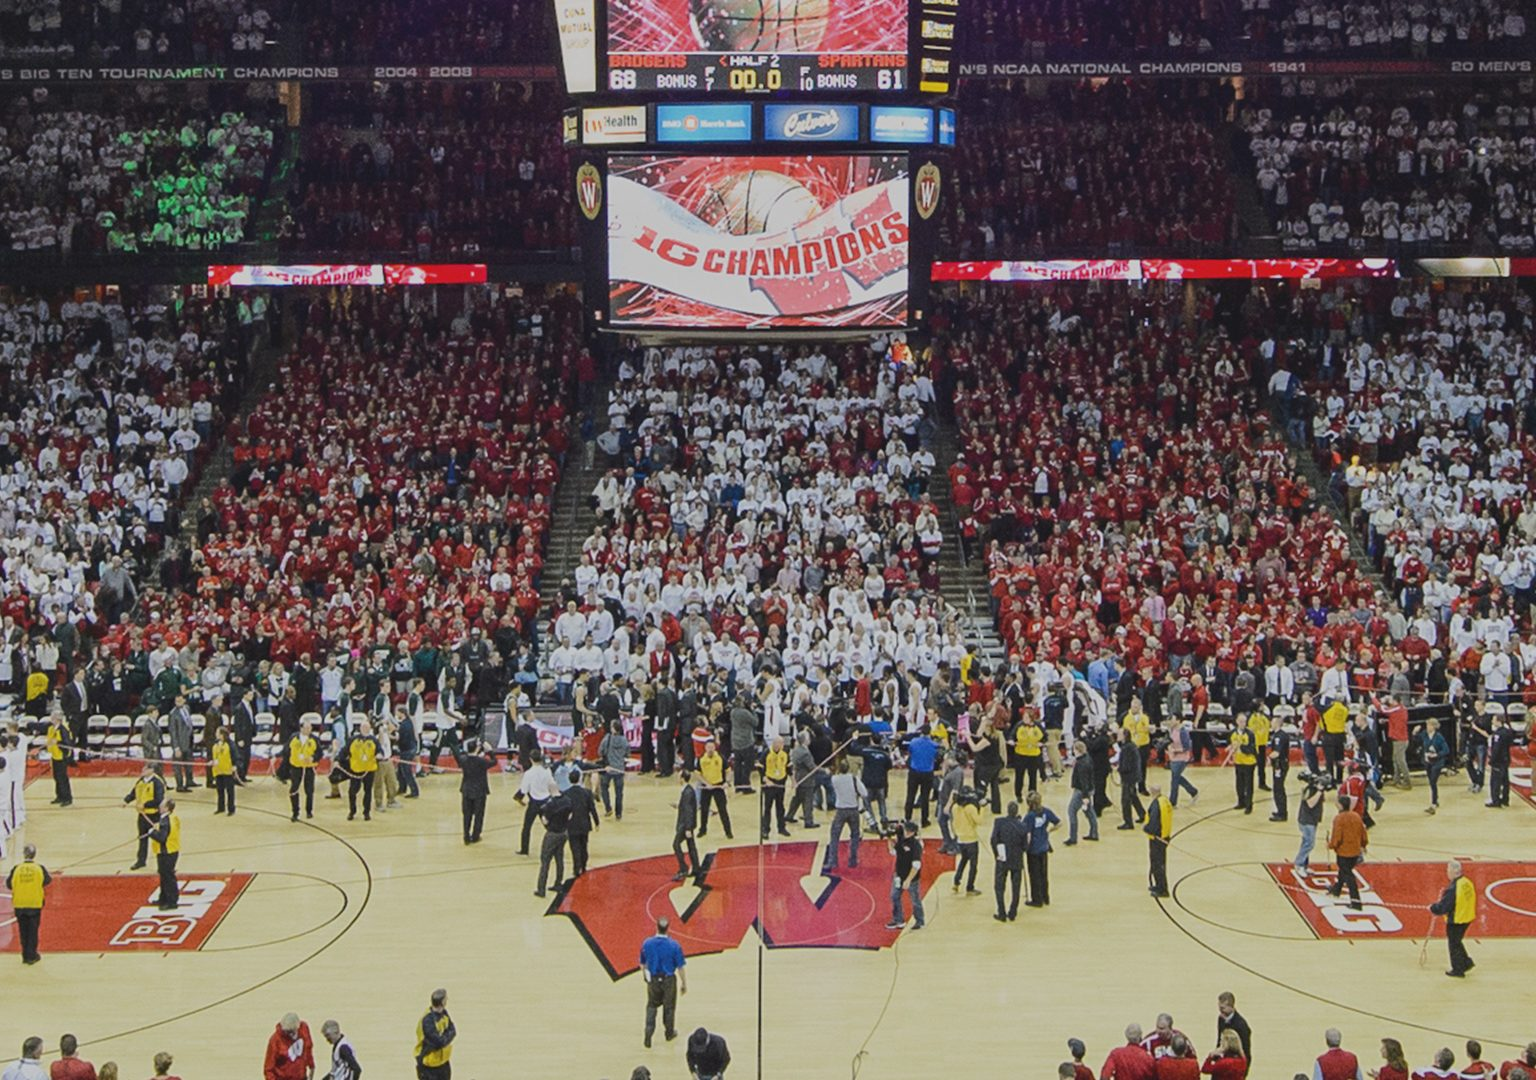 Long view of basketball court and stands filled with fans during a UW Badger basketball game